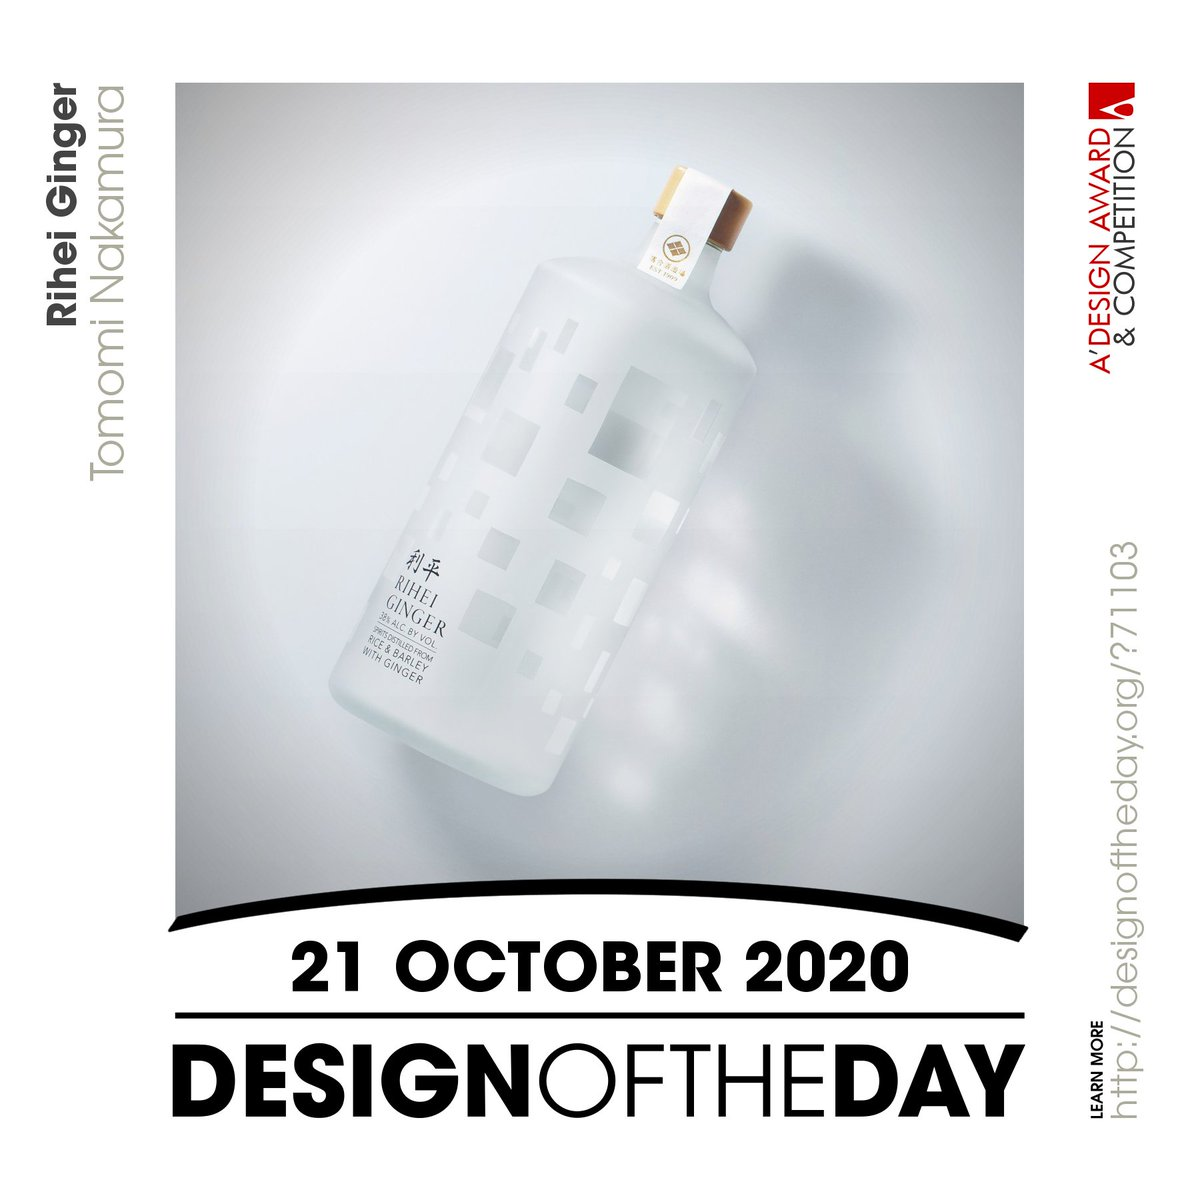 Congrats to Tomomi Nakamura, the creator behind the Design of the Day of 21 October 2020 - Rihei Ginger Japanese Craft Shochu. Check out this great work now. We are currently featuring it at https://t.co/NmRqQF612W #designoftheday https://t.co/QTirDcCImV